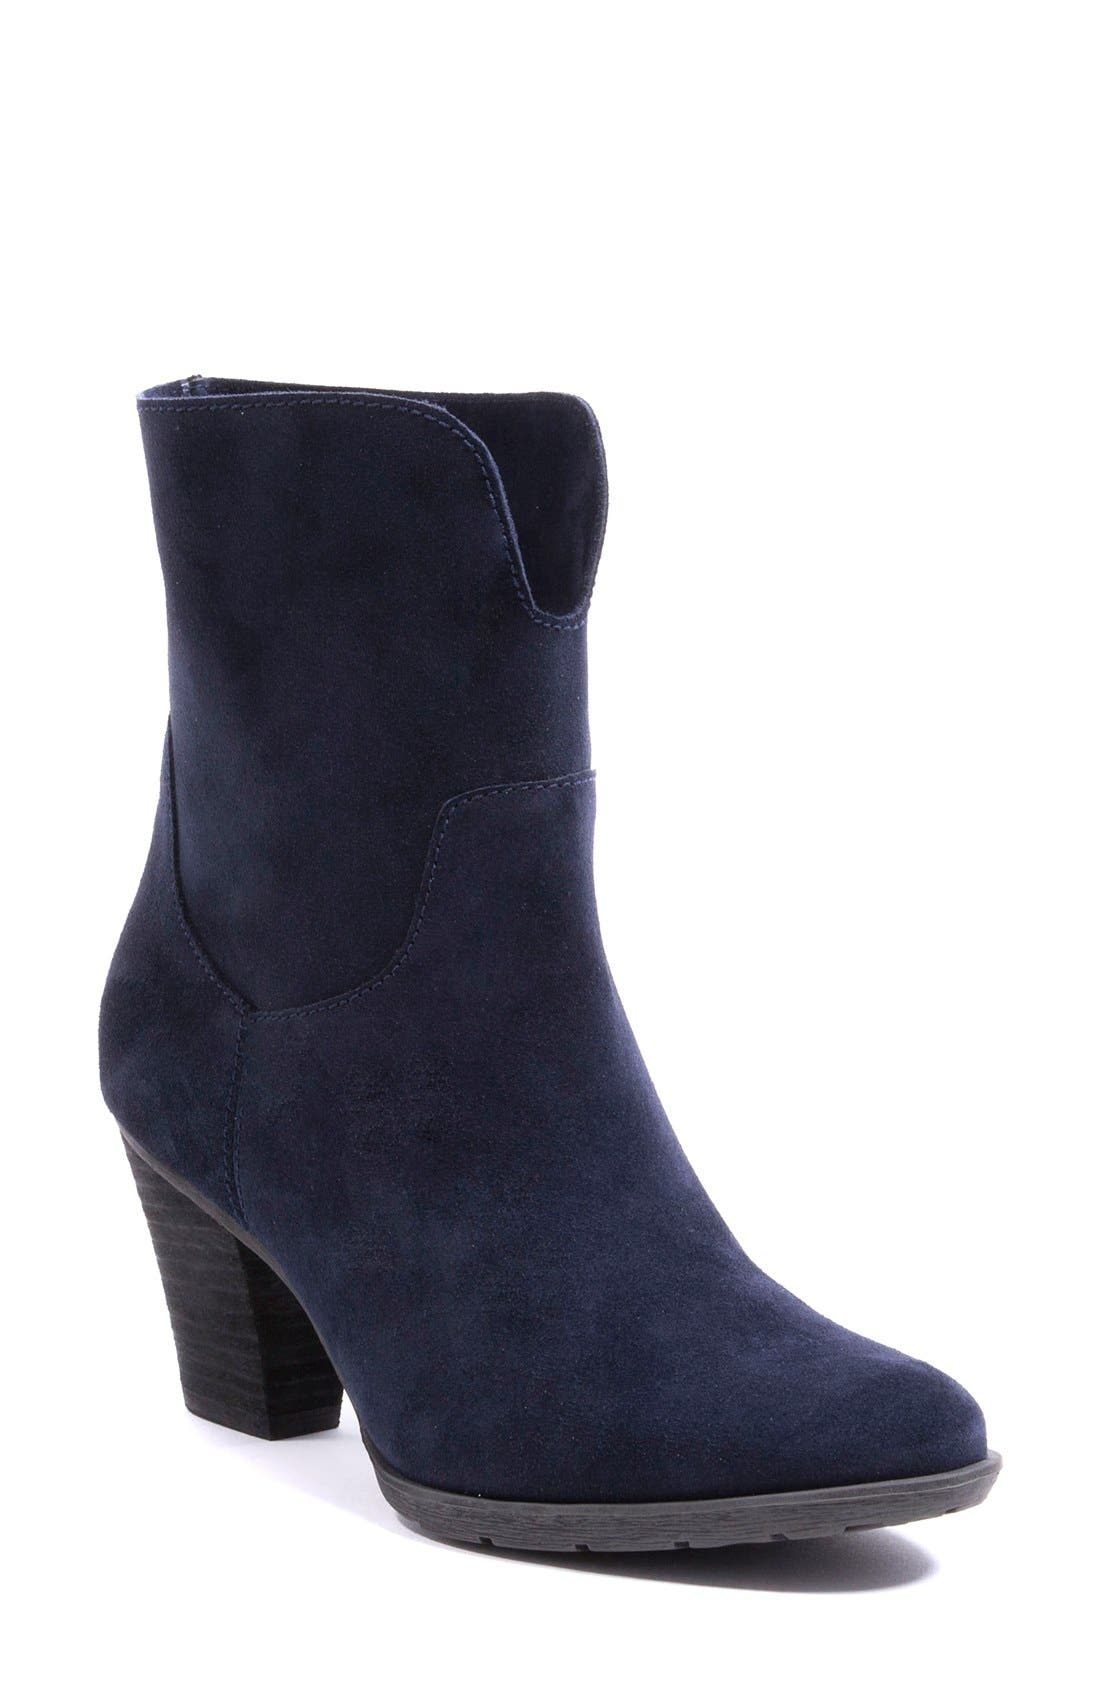 Fay Waterproof Ankle Boot,                         Main,                         color, Navy Suede